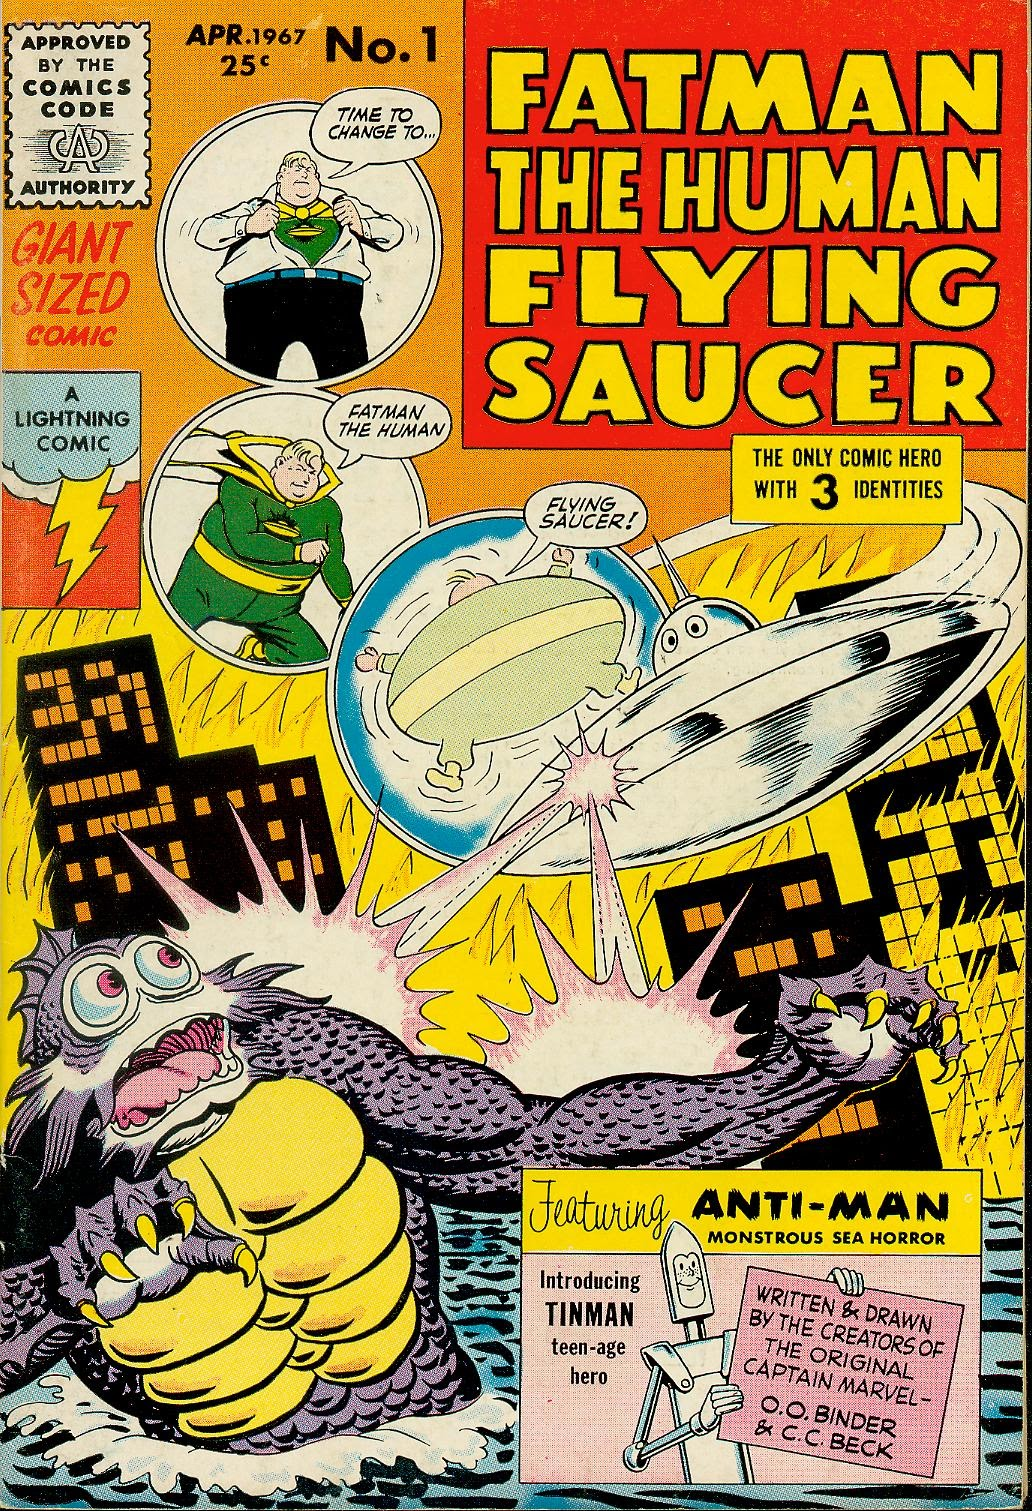 Fatman, The Human Flying Saucer issue 1 - Page 1